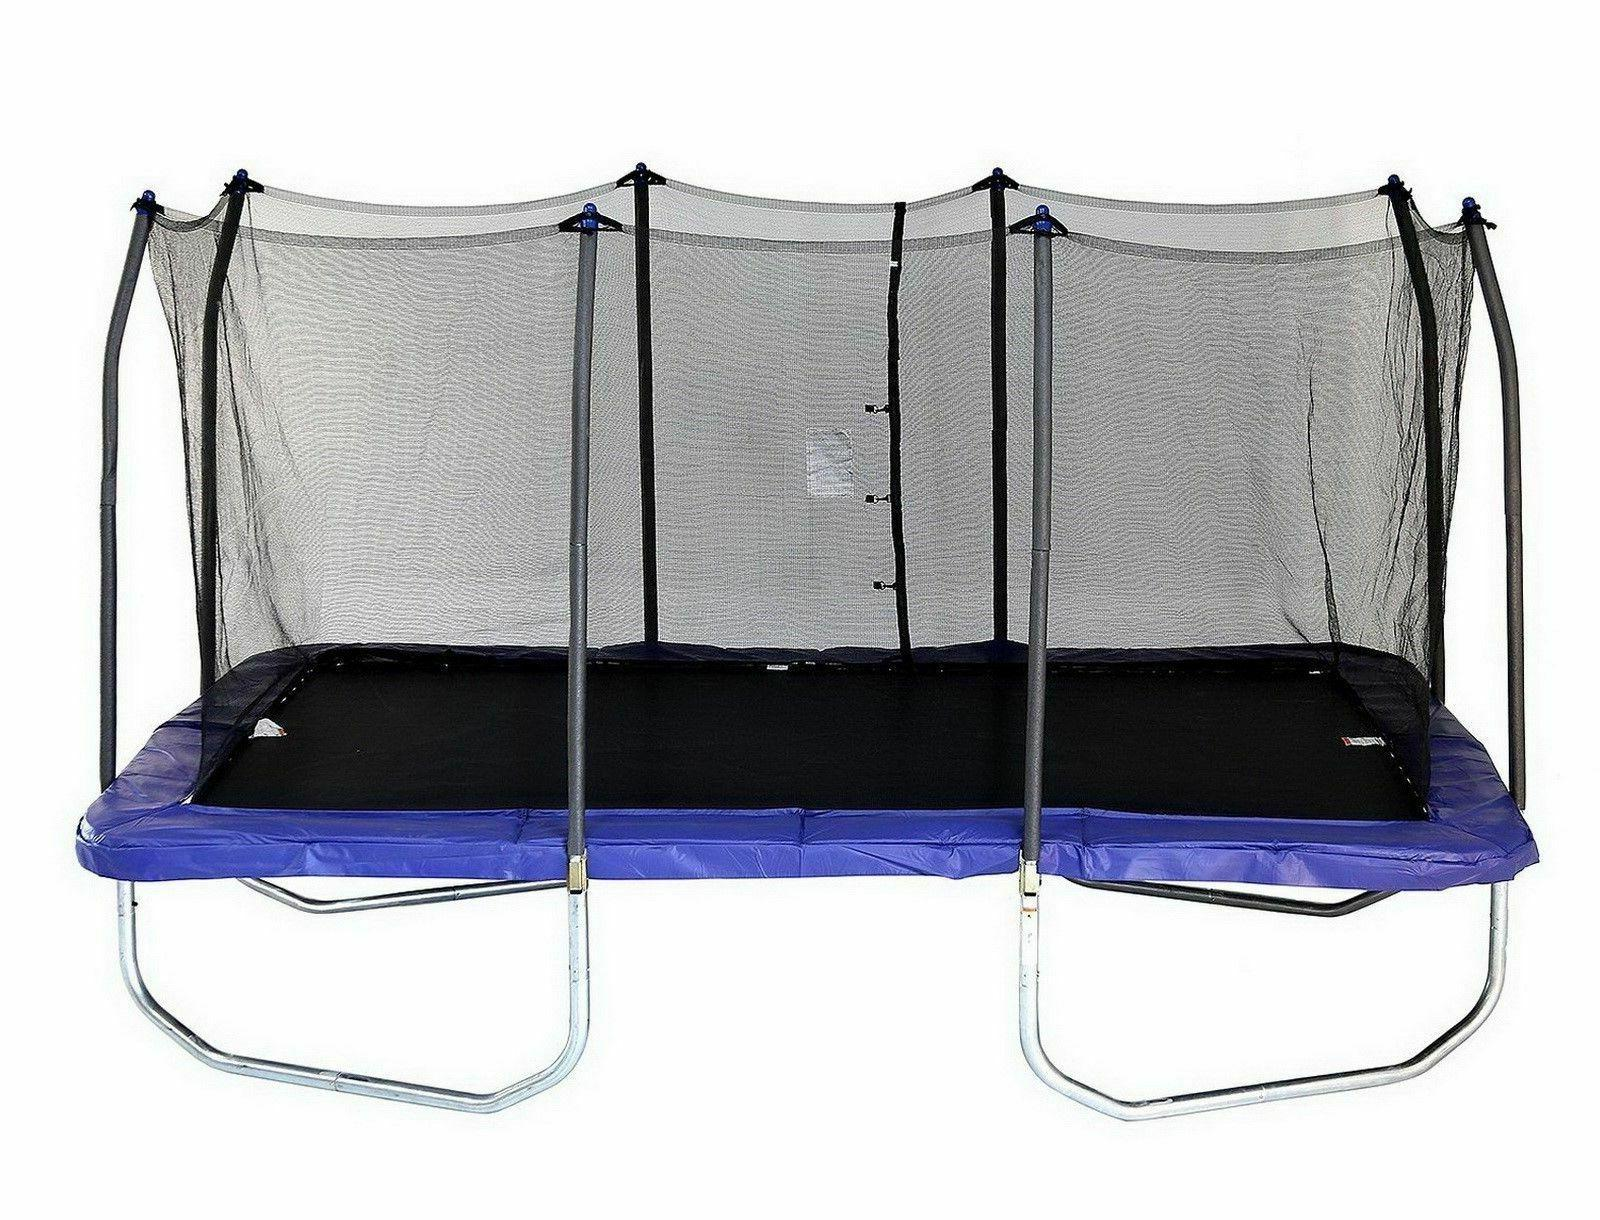 new trampolines 15 rectangle trampoline with enclosure